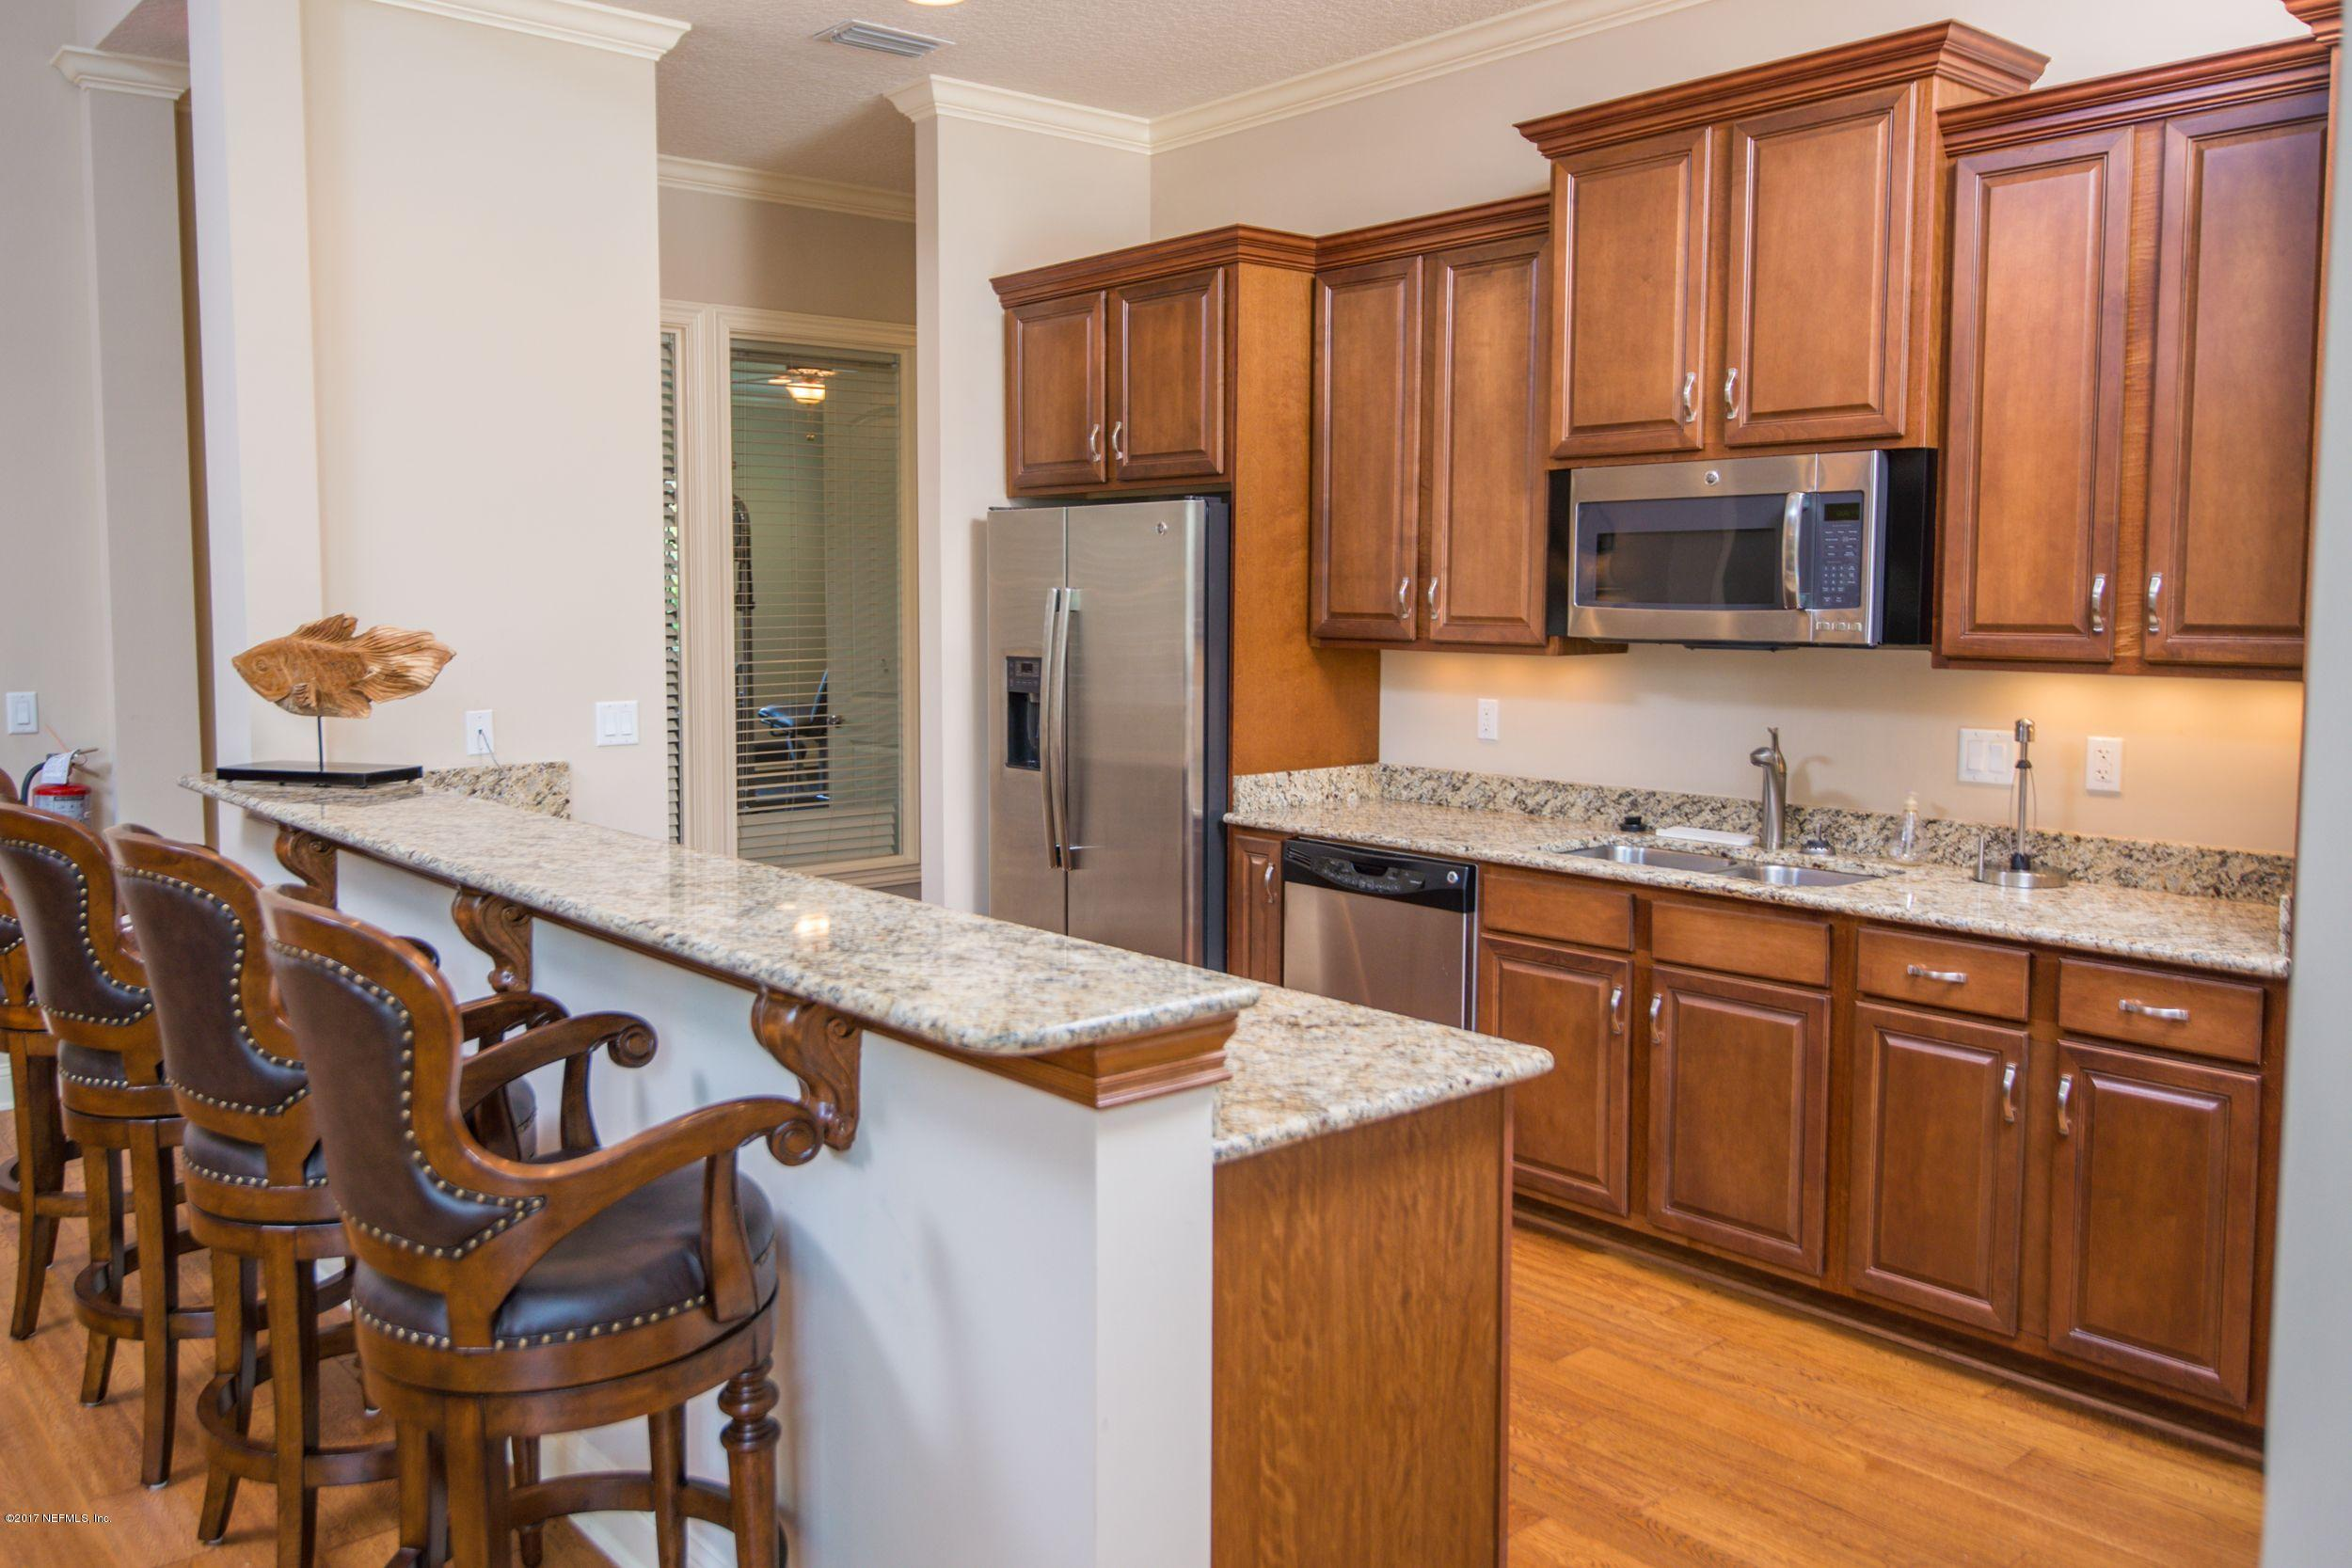 51 AMACANO, ST AUGUSTINE, FLORIDA 32084, 2 Bedrooms Bedrooms, ,2 BathroomsBathrooms,Residential - condos/townhomes,For sale,AMACANO,921961